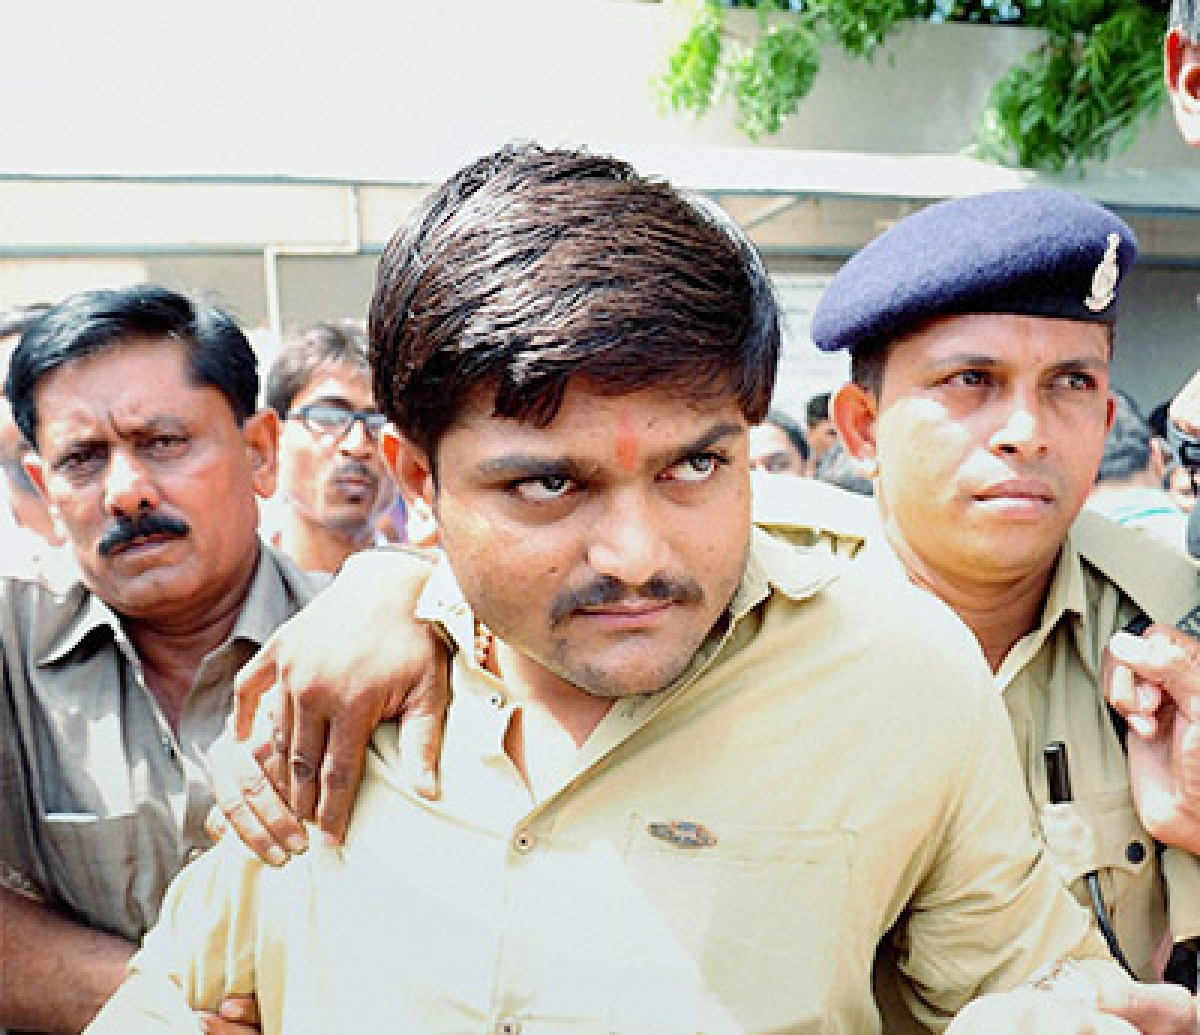 Ahmedabad: Patidar Anamat Andolan Samiti (PAAS) Hardik Patel is taken to Gujarat High court in Ahmedabad on Tuesday for a hearing in the Habeas Corpus petition application filed by his advocate. PTI Photo  (PTI9_29_2015_000078B)